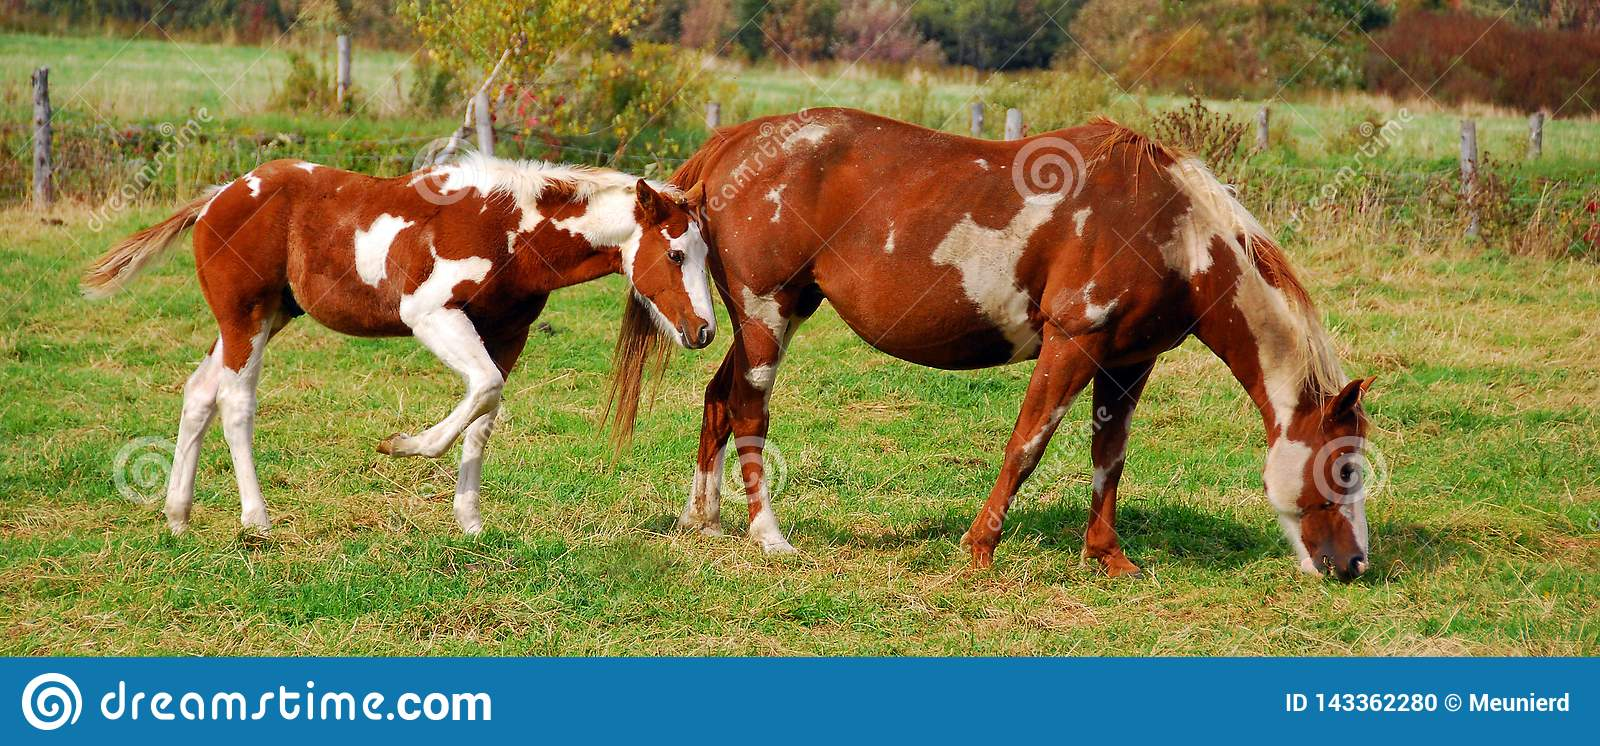 392 Breed Horse Paint Photos Free Royalty Free Stock Photos From Dreamstime